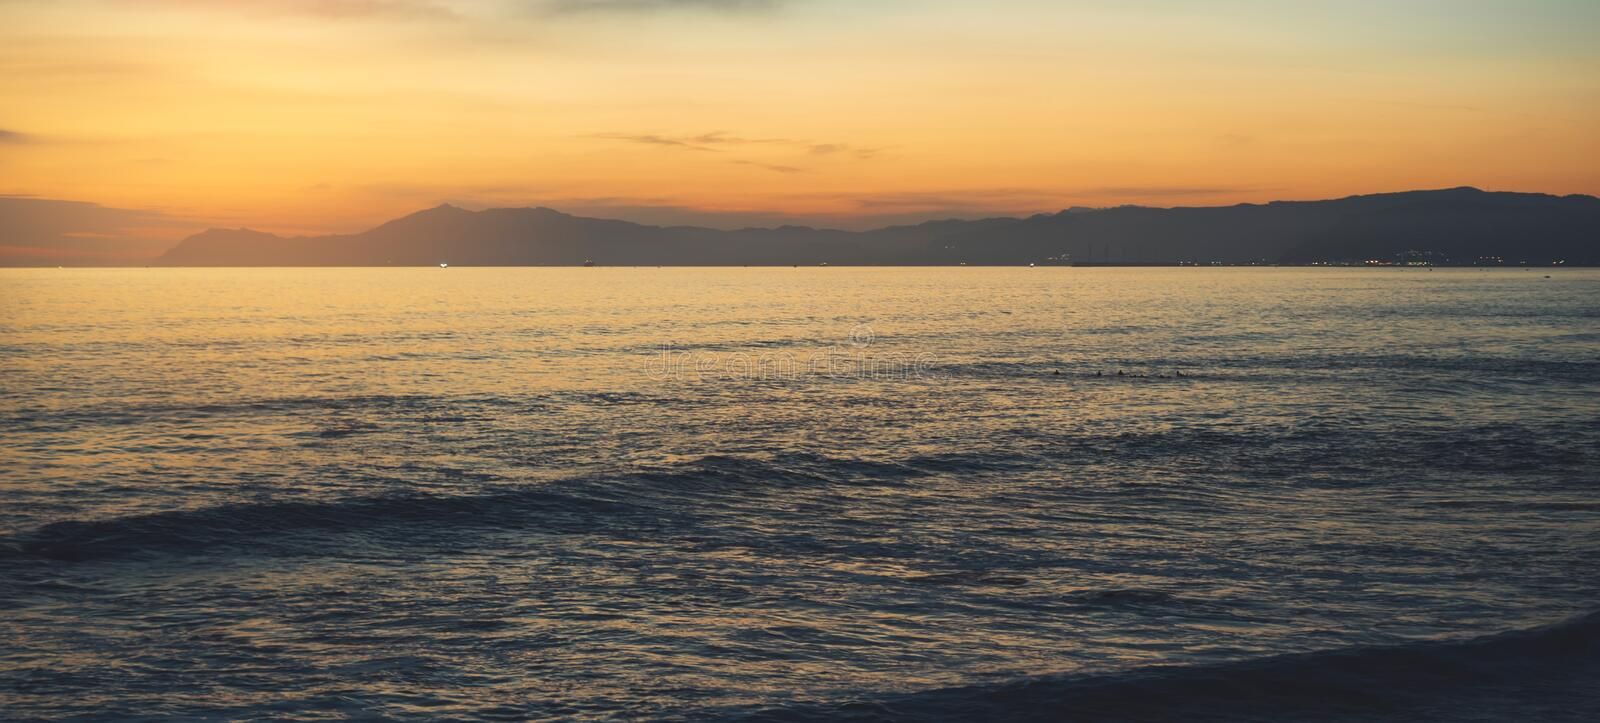 Clouds blue sky and gold sunlight sunset on horizon ocean, background seascape dramatic atmosphere rays sunrise. Relax view waves stock photos